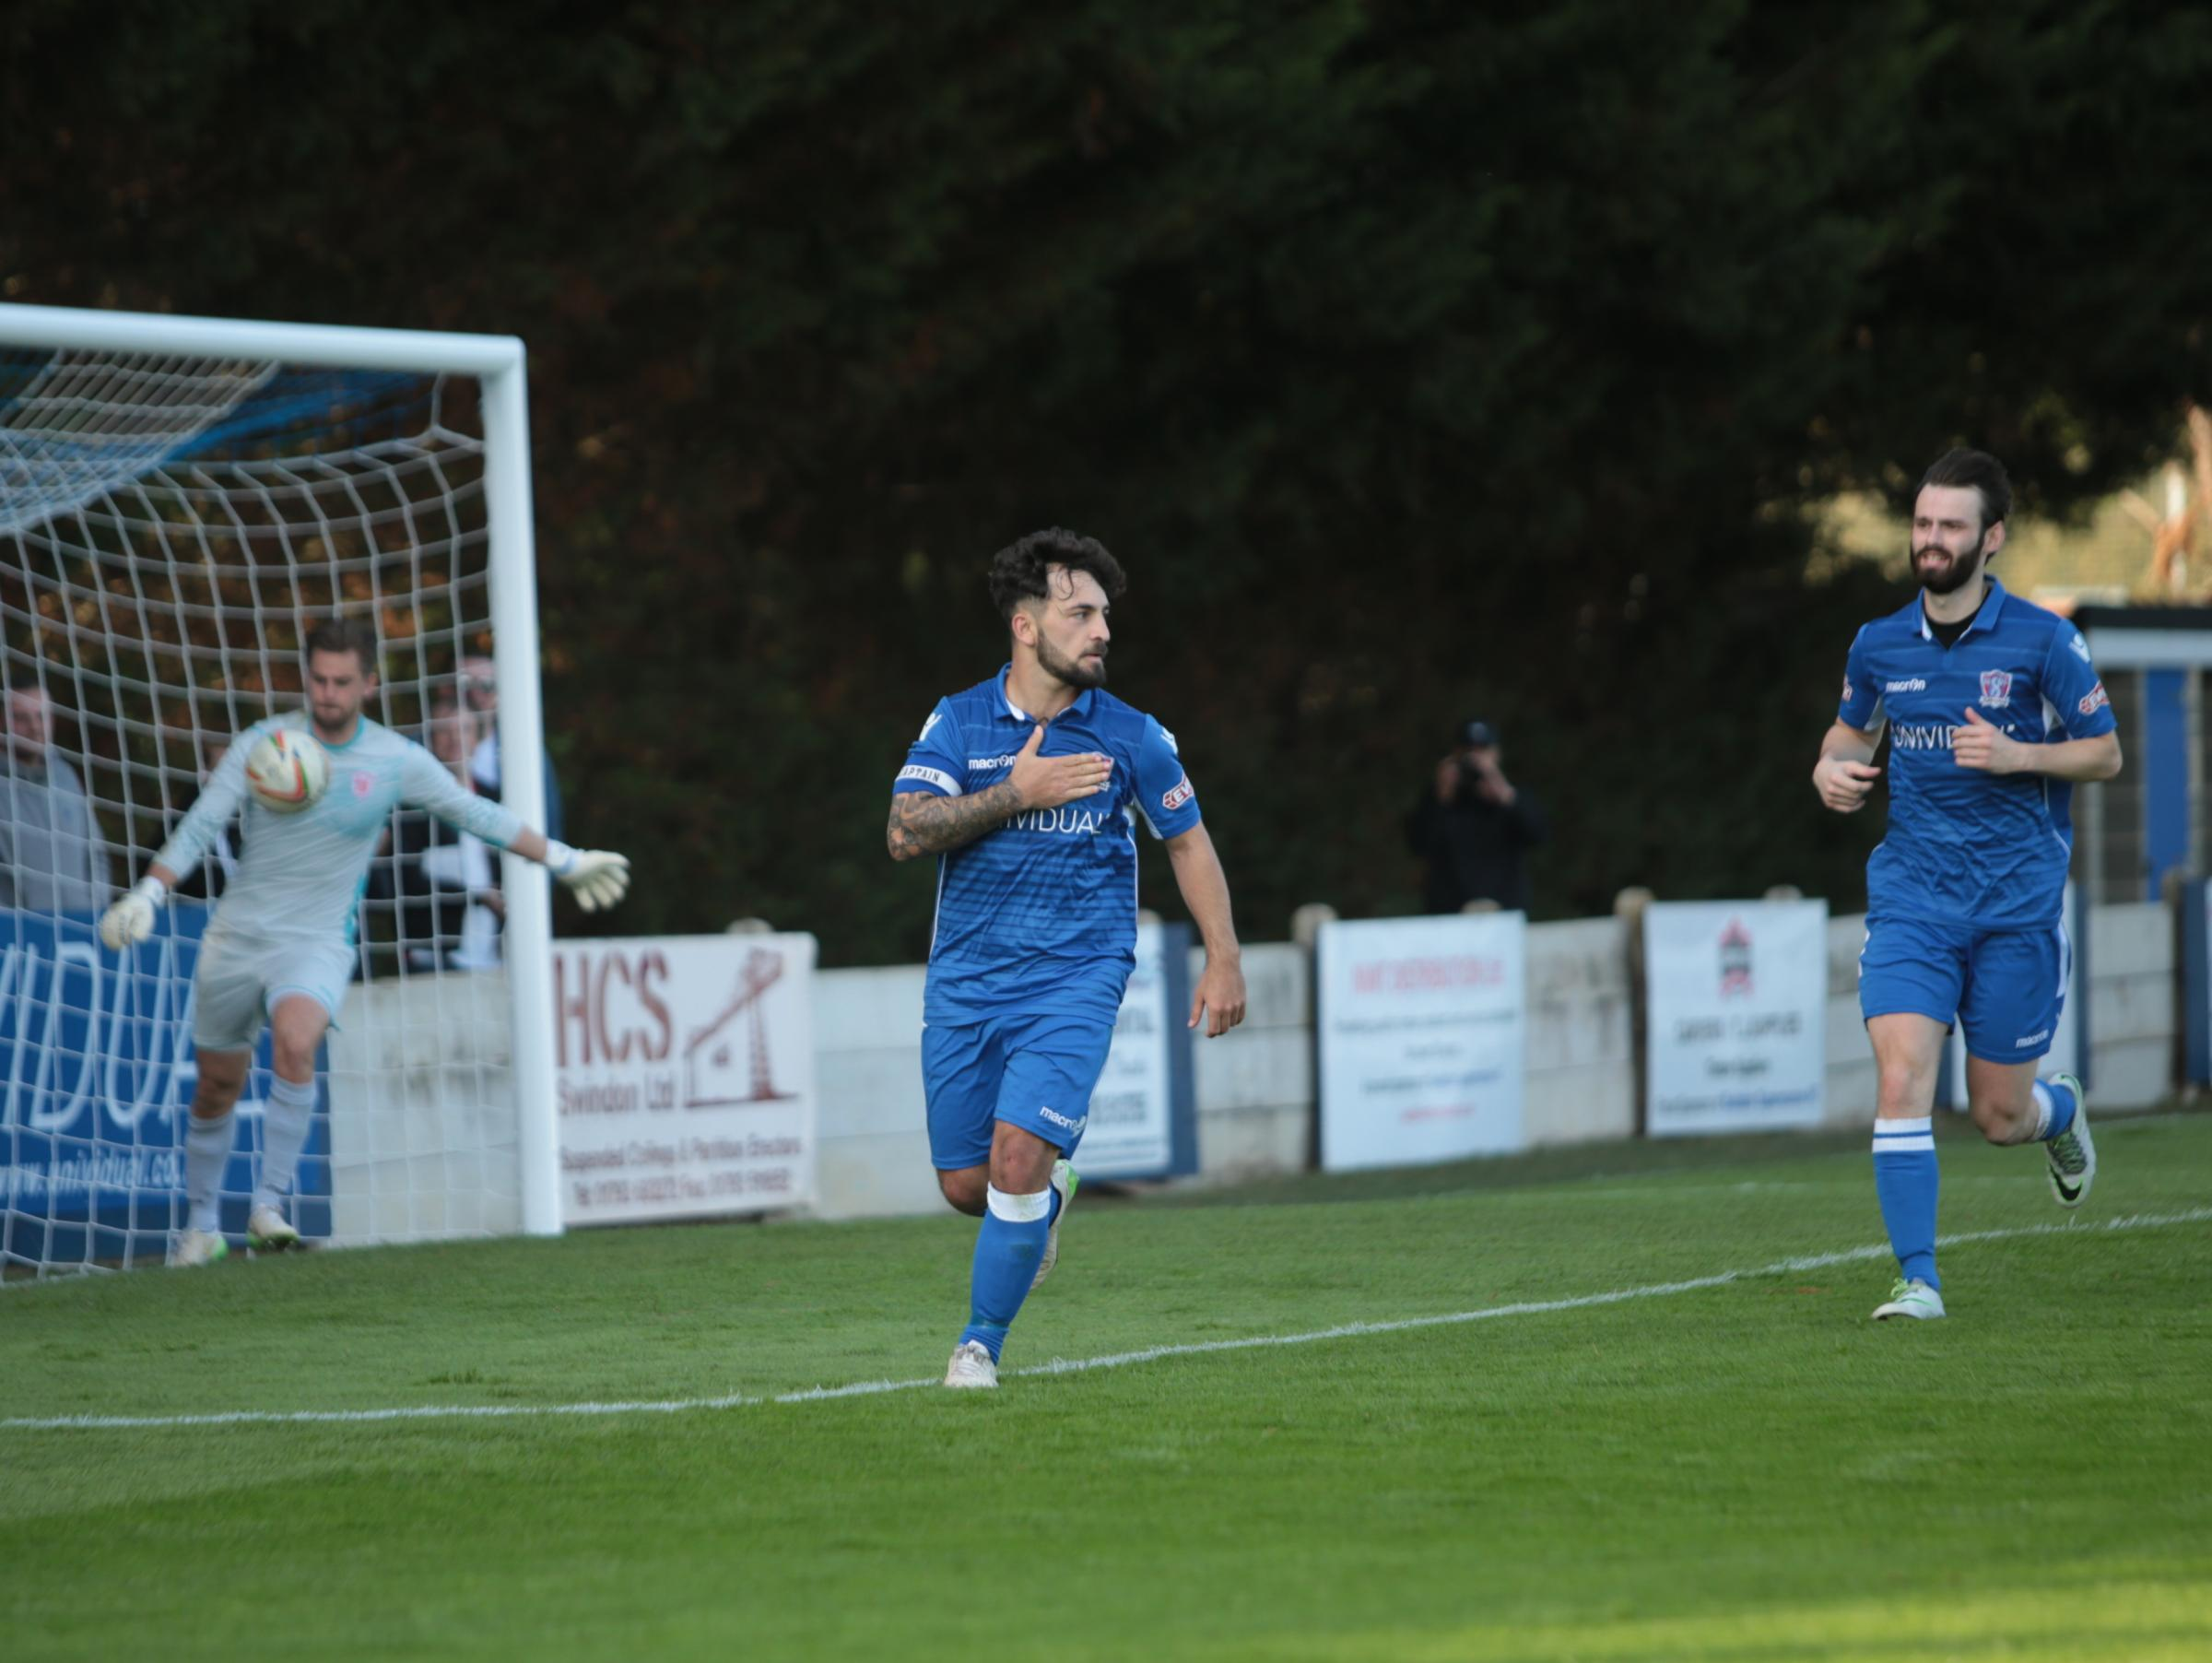 Josh Parsons was on target for Swindon Supermarine at Winchester City